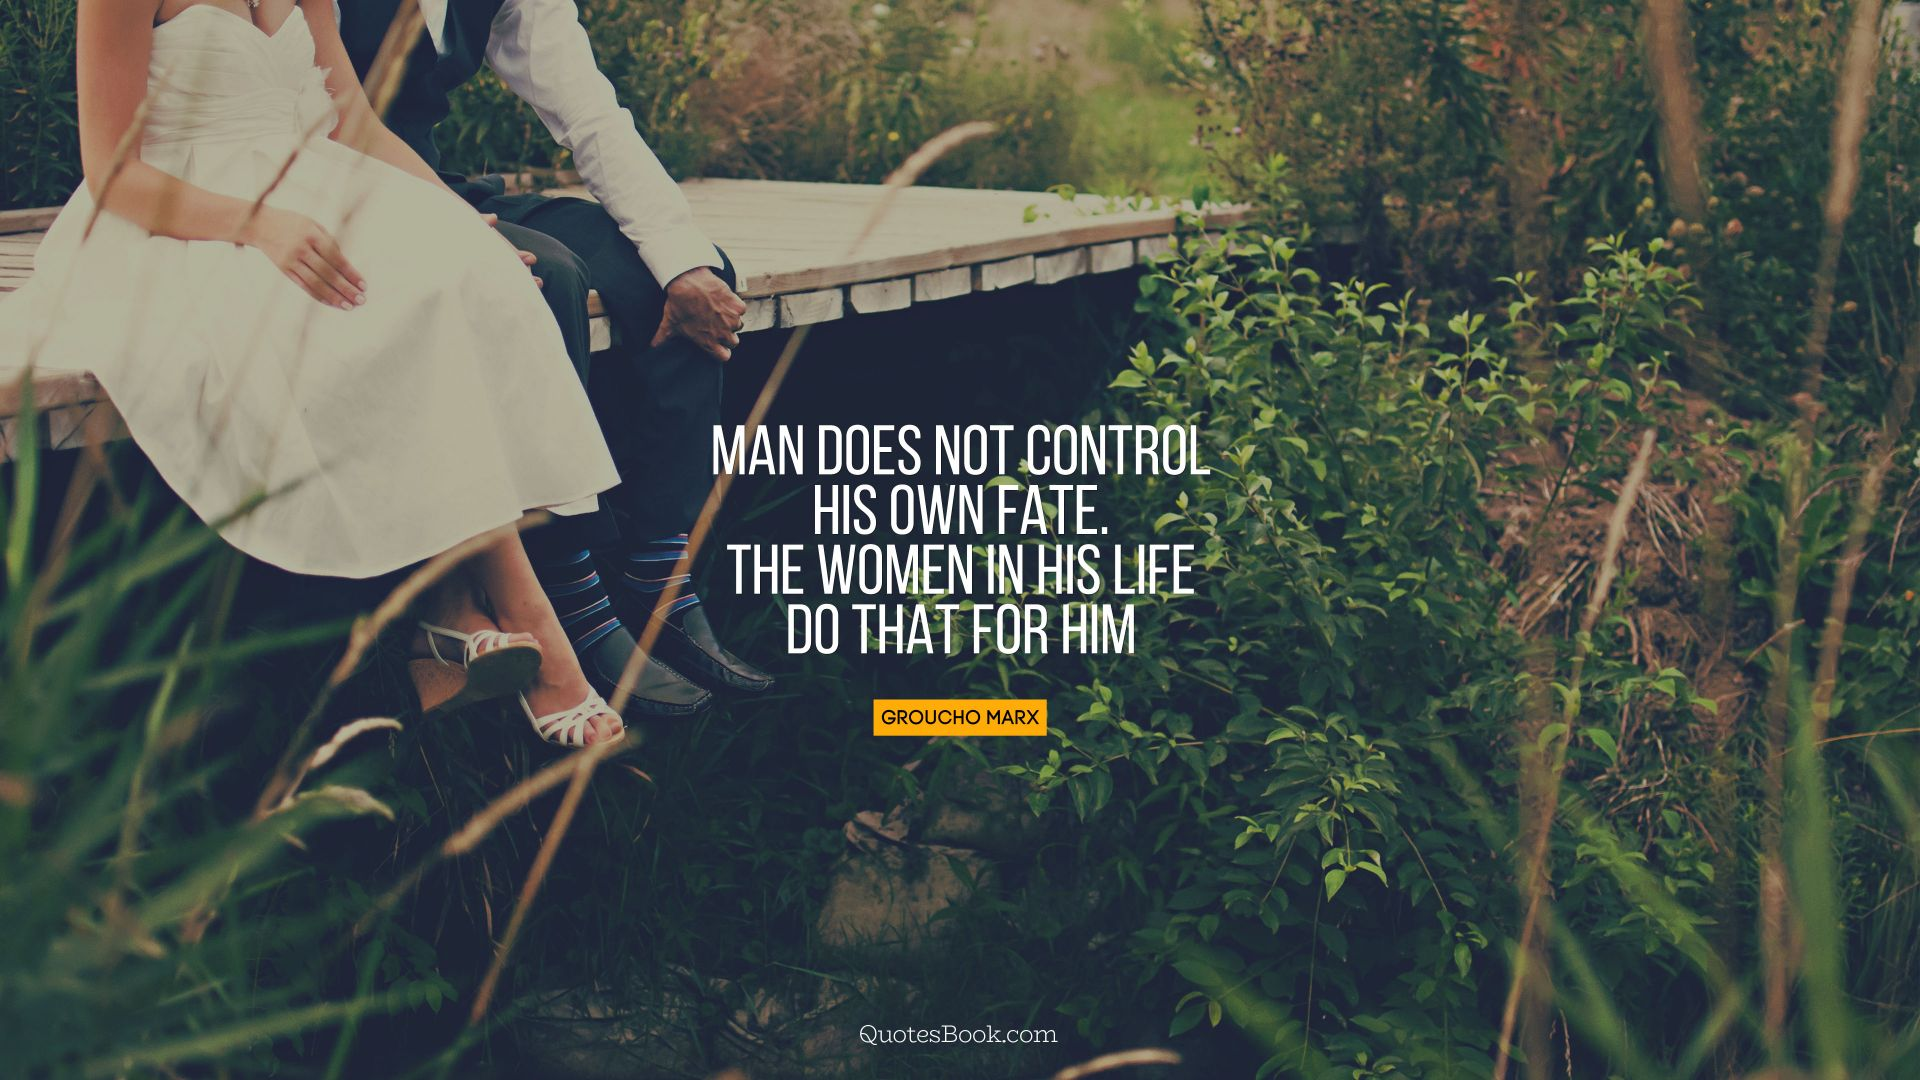 Man does not control his own fate. The women in his life do that for him. - Quote by Groucho Marx